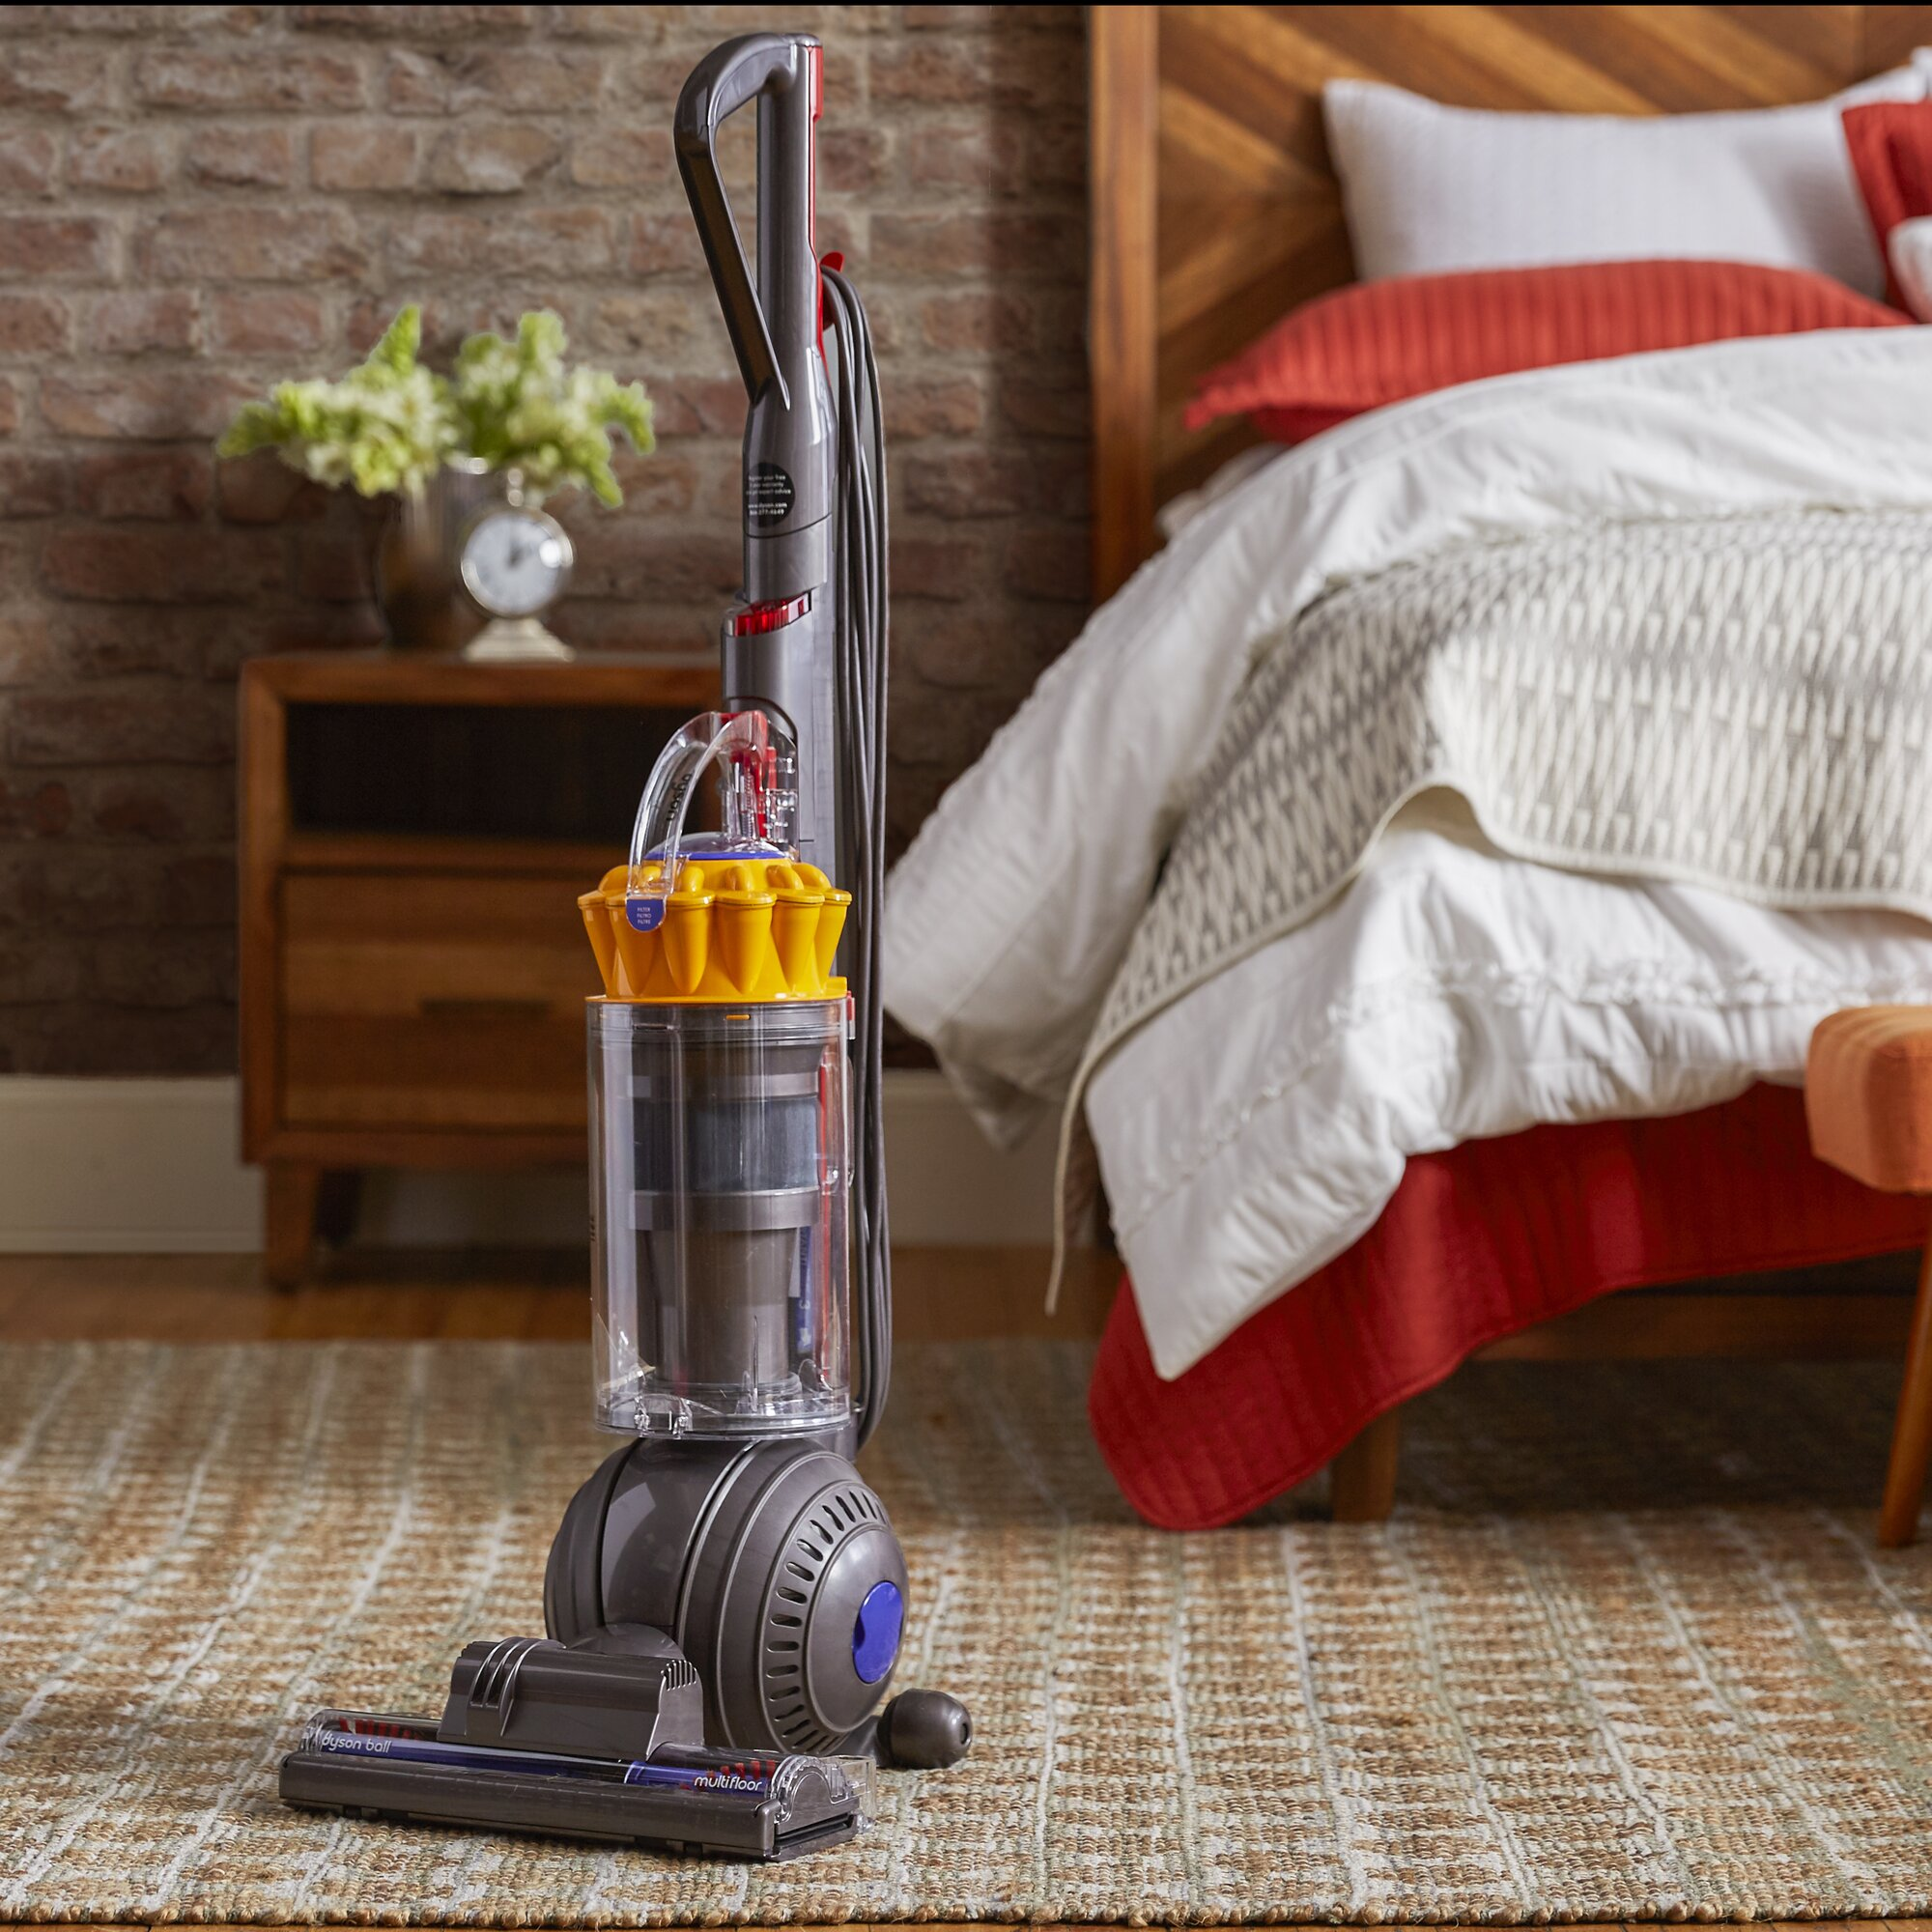 johnlewis at vacuum buydyson john com rsp light pdp main online upright ball dyson multi cleaner floors lewis floor